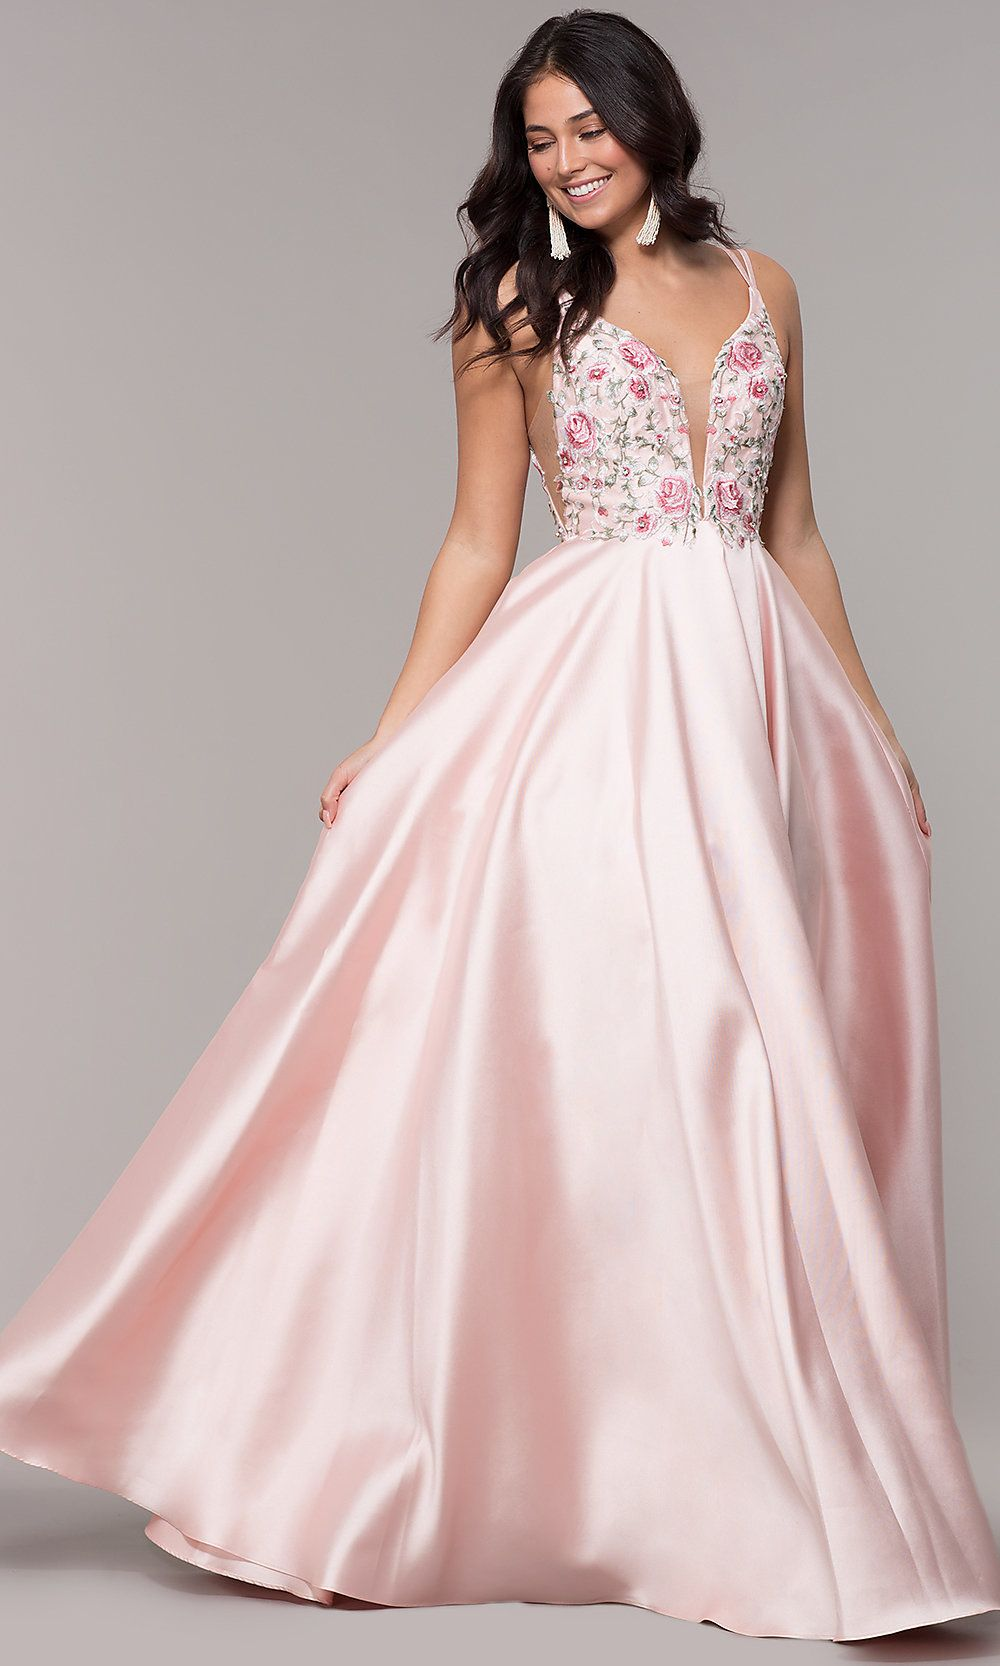 0fb5a97988c Embroidered-Bodice Long A-Line V-Neck Prom Dress in 2019